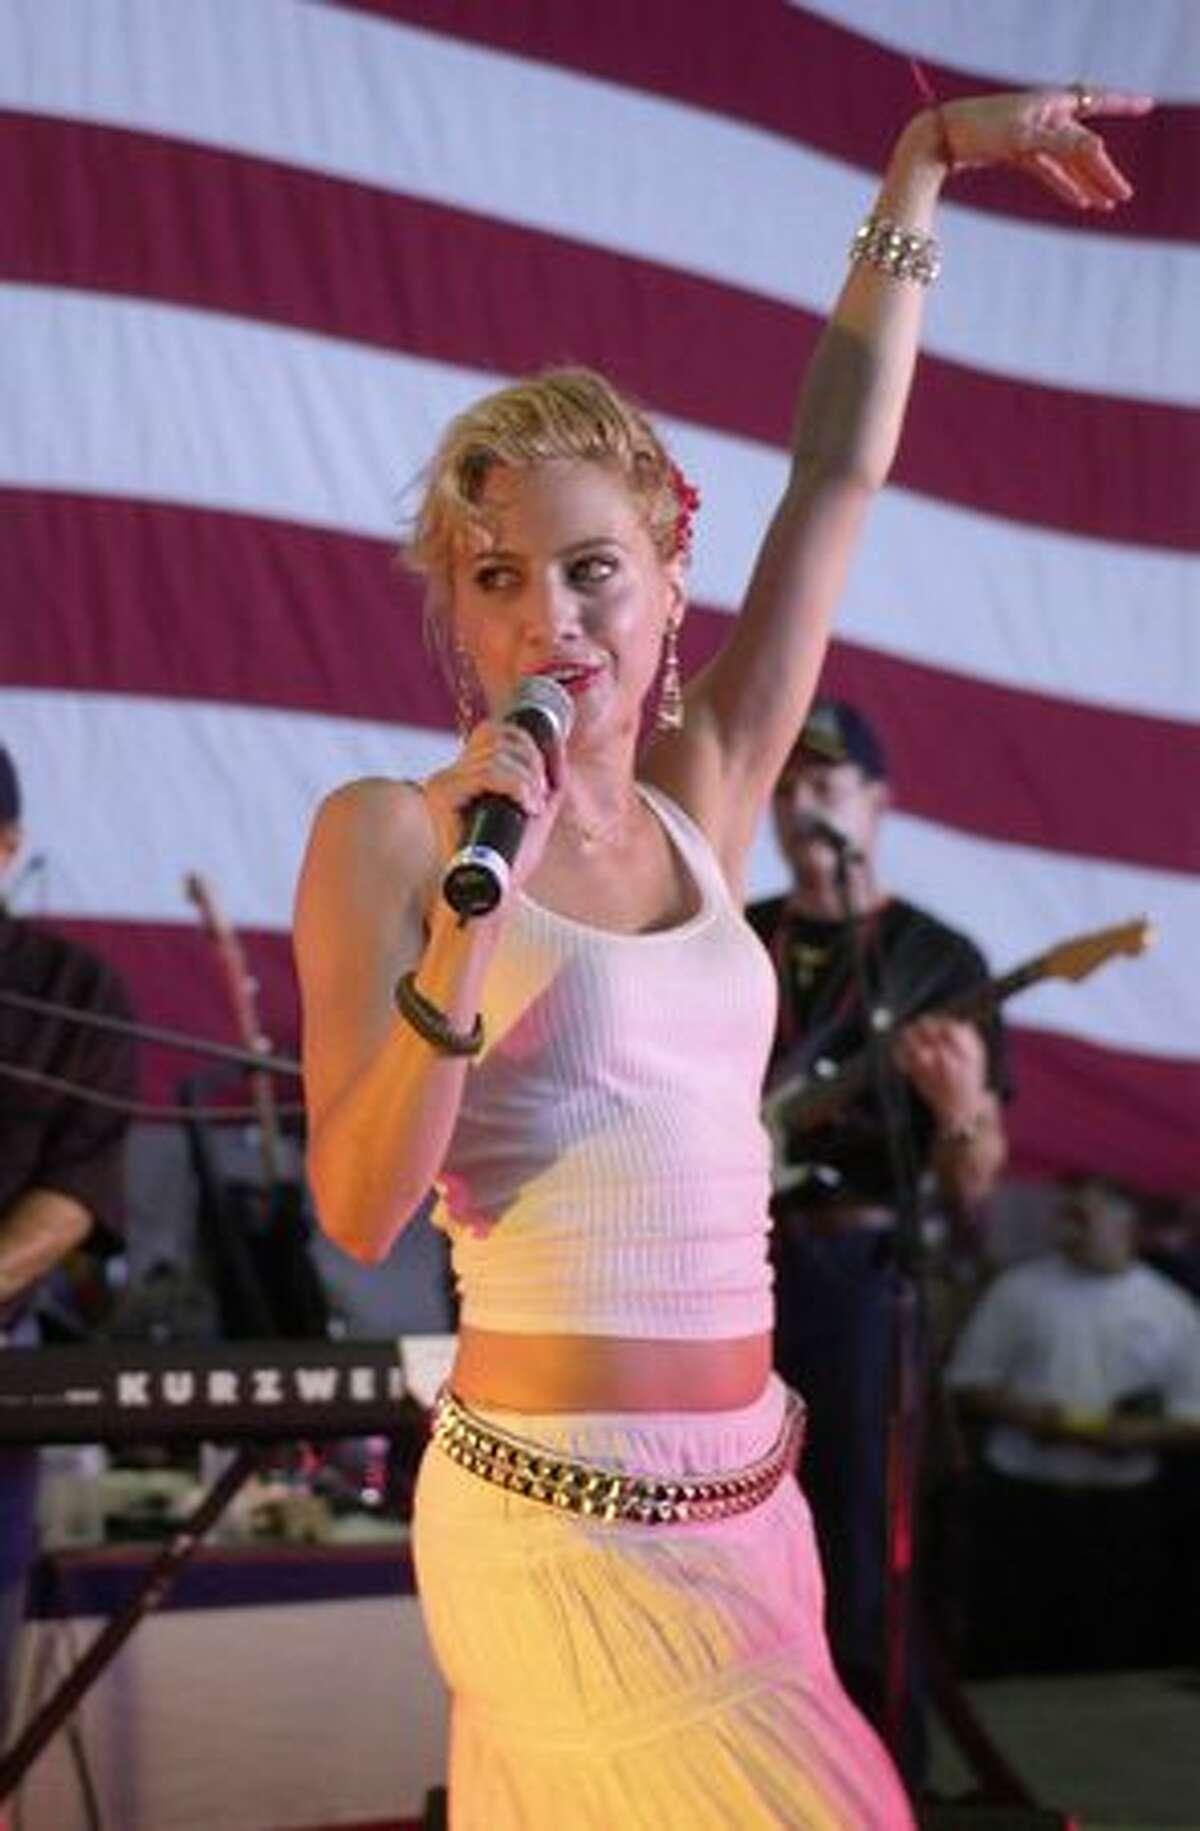 Brittany Murphy performs during a United Services Organization (USO) show aboard the USS Nimitz on June 19, 2002 in the Arabian Gulf.